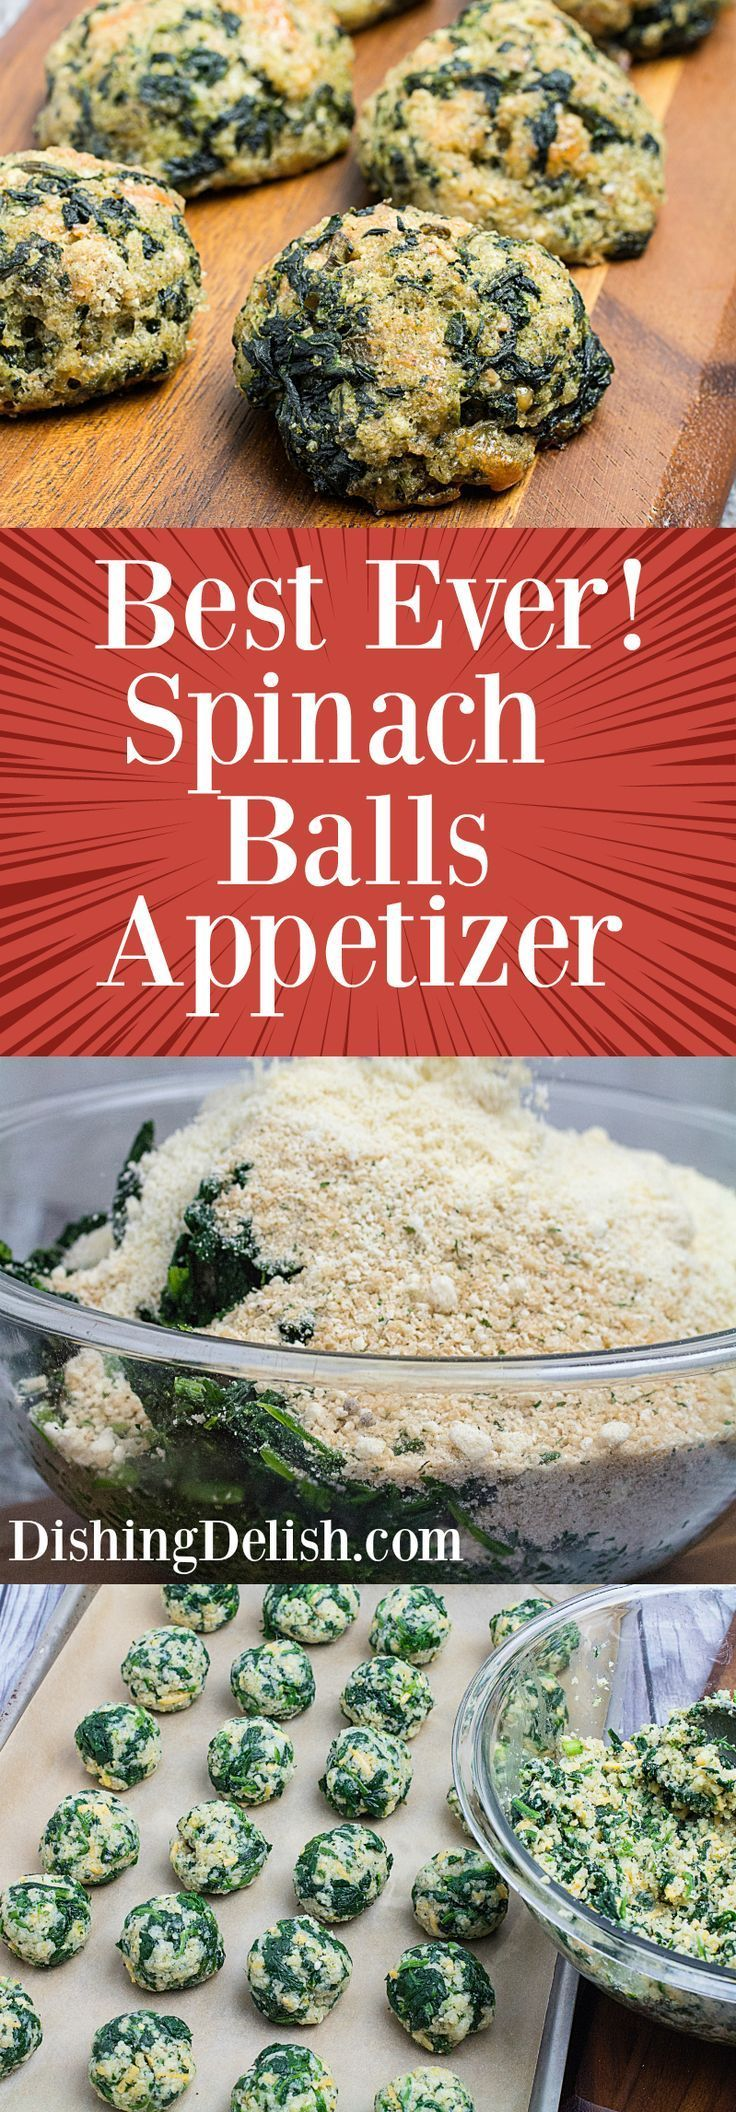 Click this pin to get the recipe! Repin to save for later! Savory little bites of spinach, garlic, spices, and two kinds of cheese, today I'm sharing with you my recipe for the Best Ever Spinach Balls Appetizer. You might want to make a second batch, because these go fast at parties!